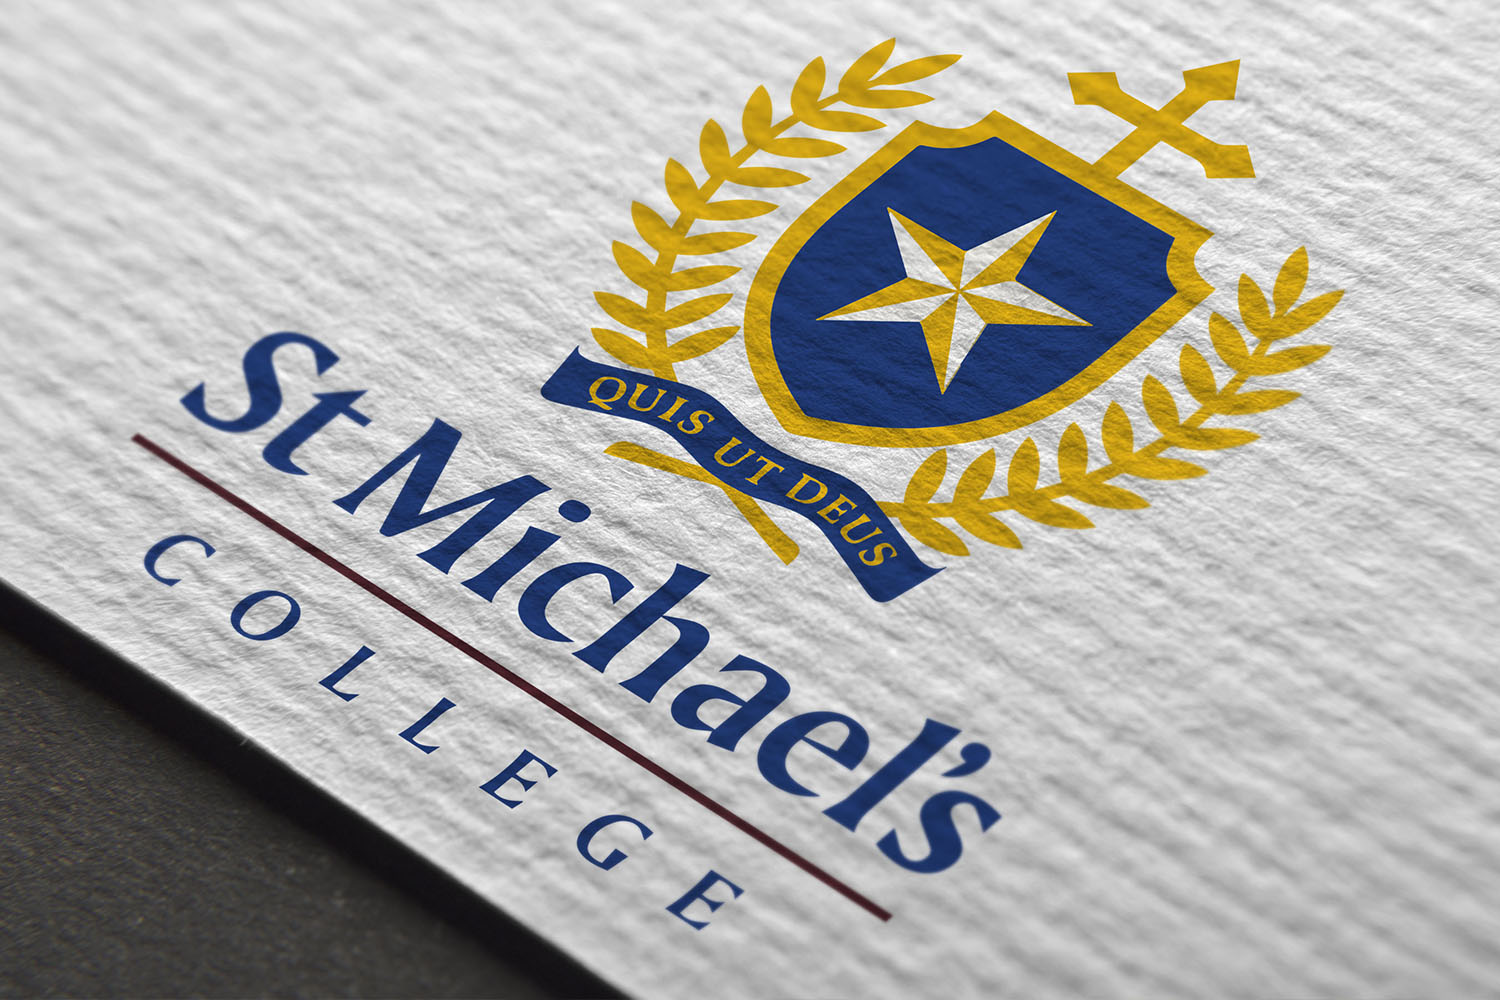 St Michael's College business card close-up